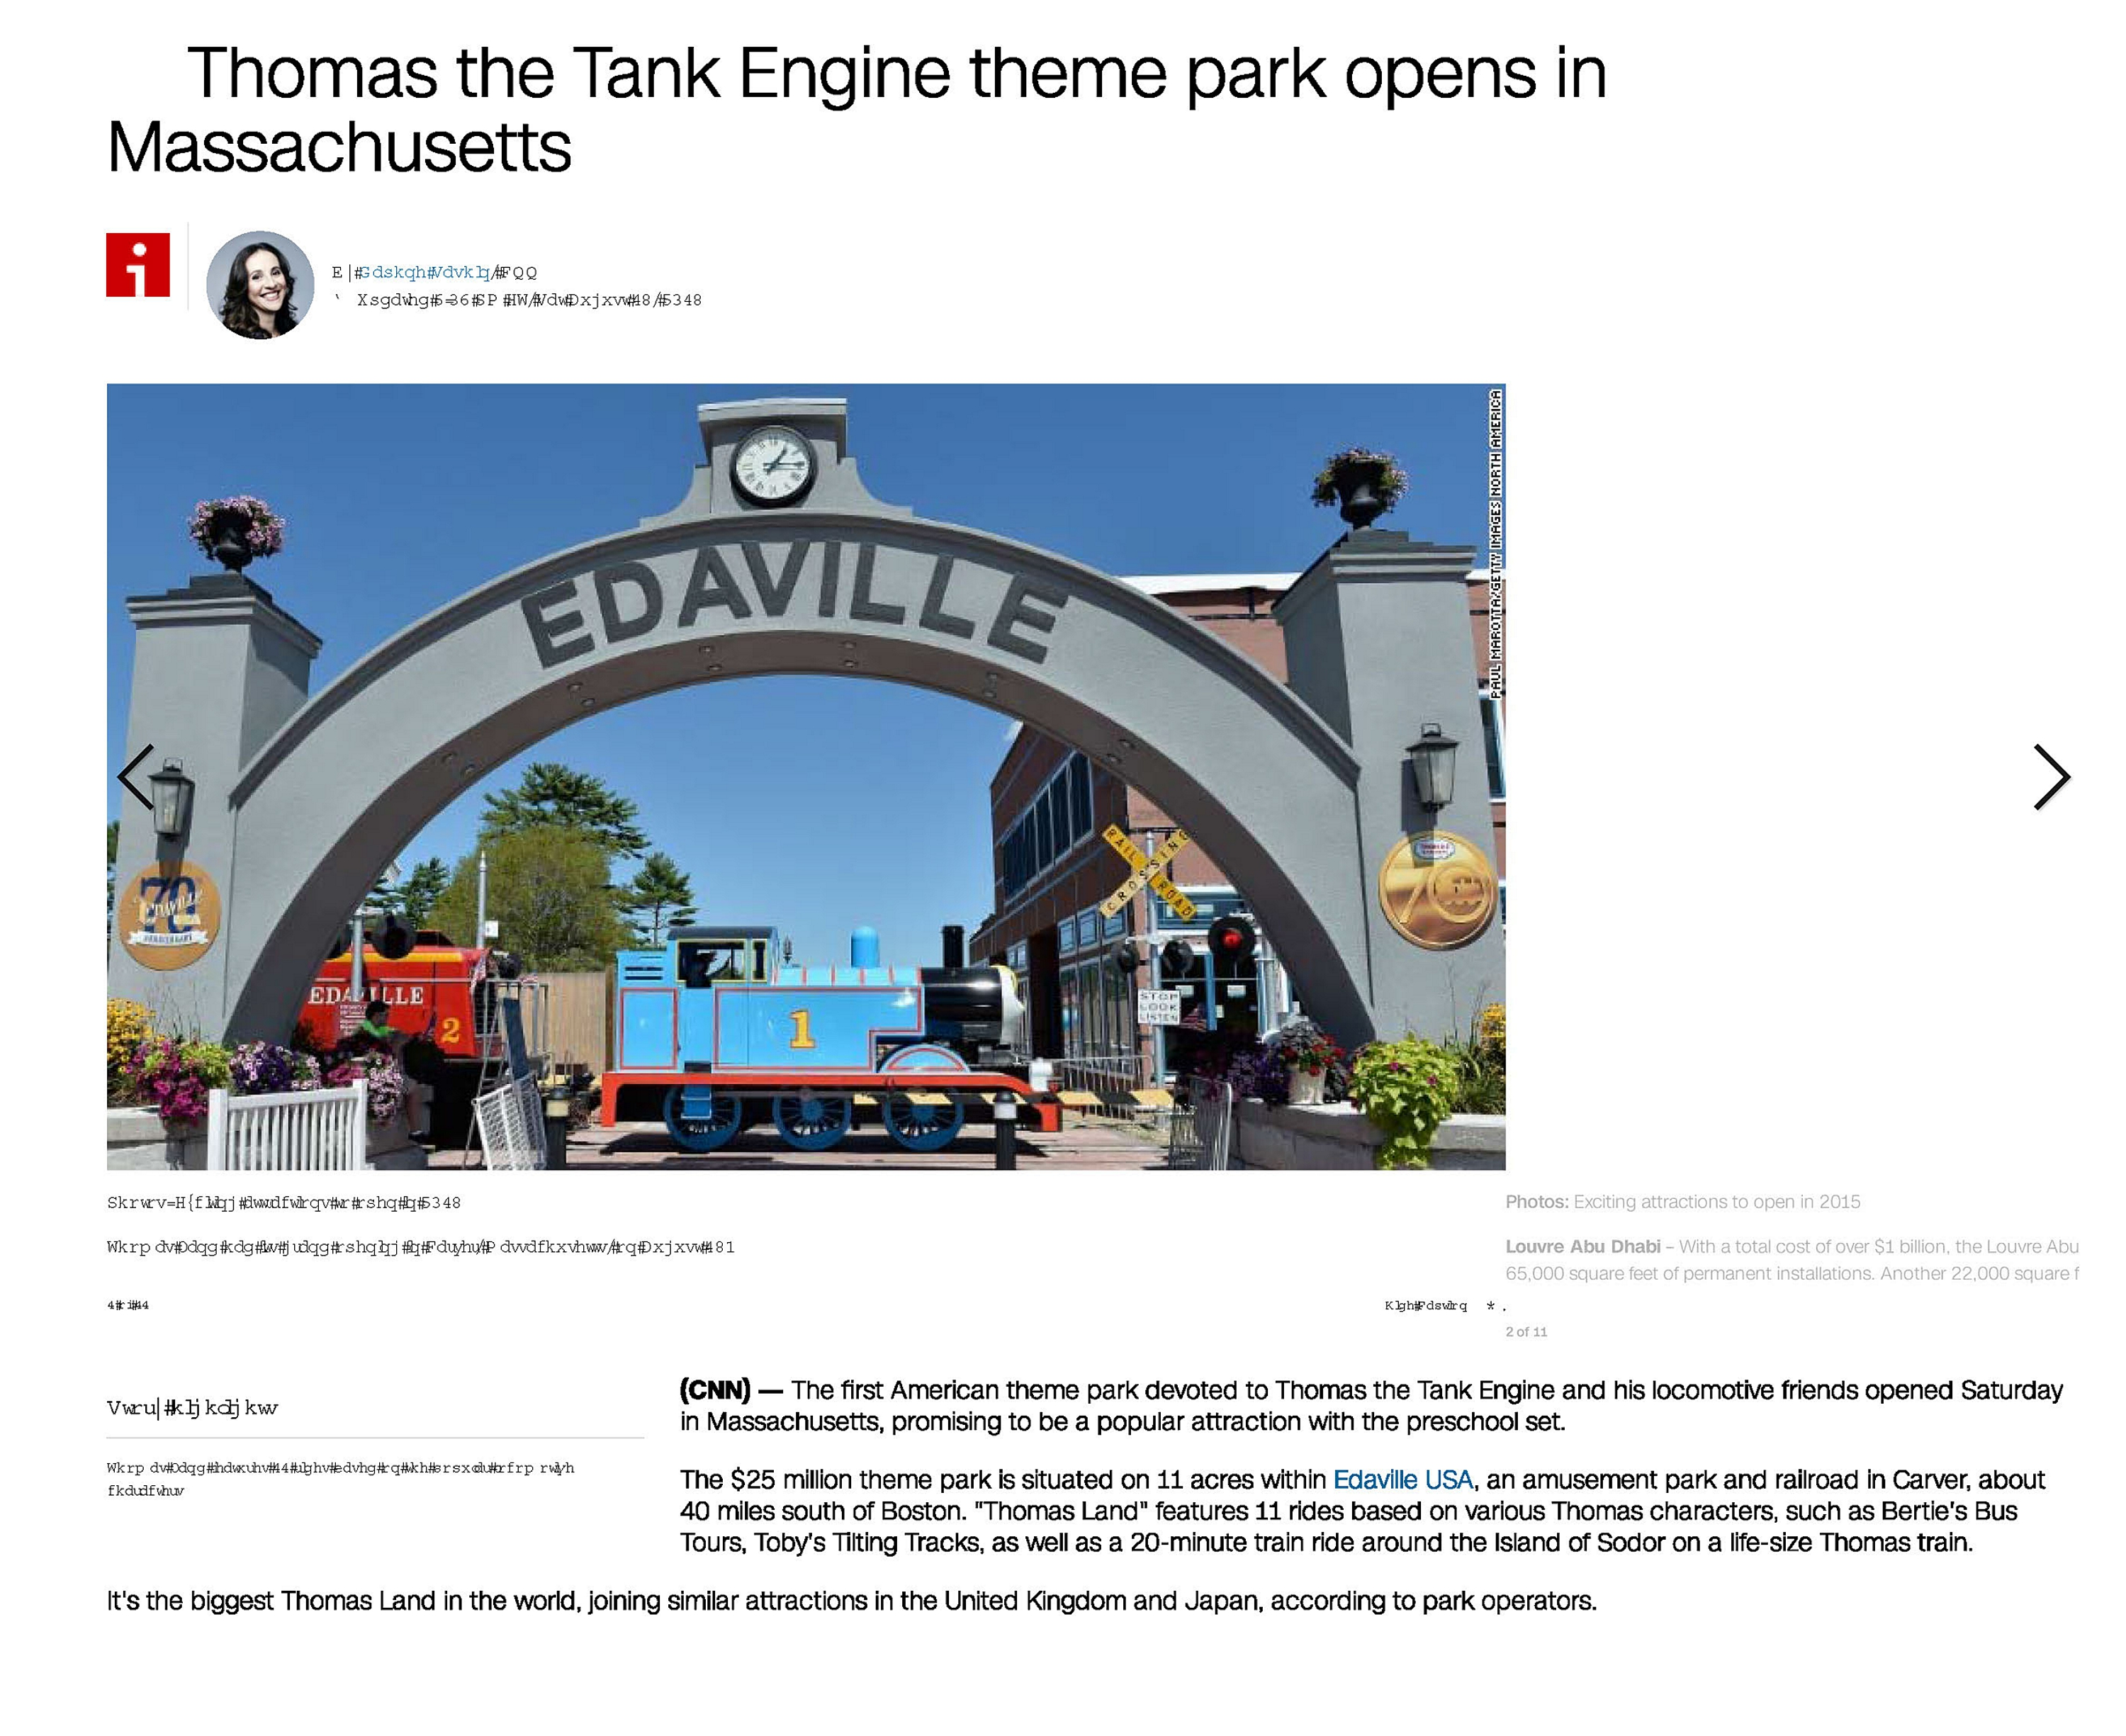 Thomas the Train theme park opens in Massachusetts - CNN.jpg